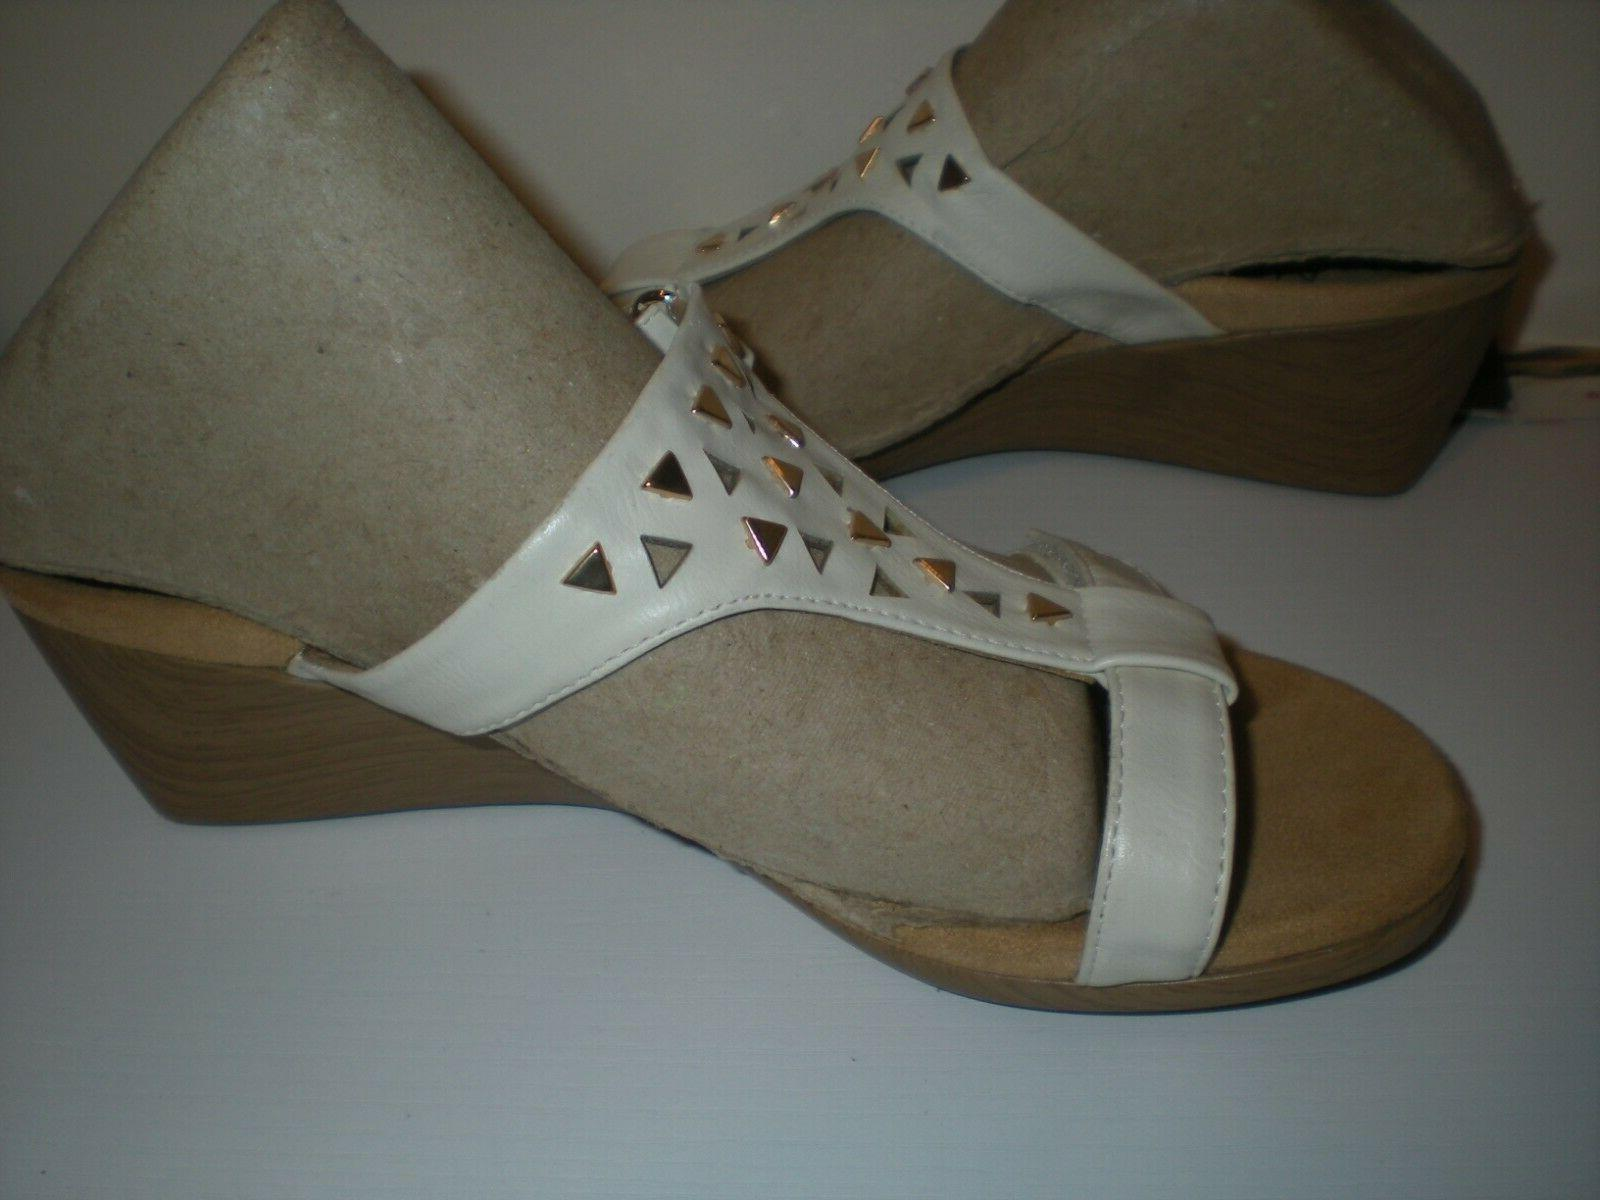 Vionic $110 Women's Studded Triangle Sandals Size 5